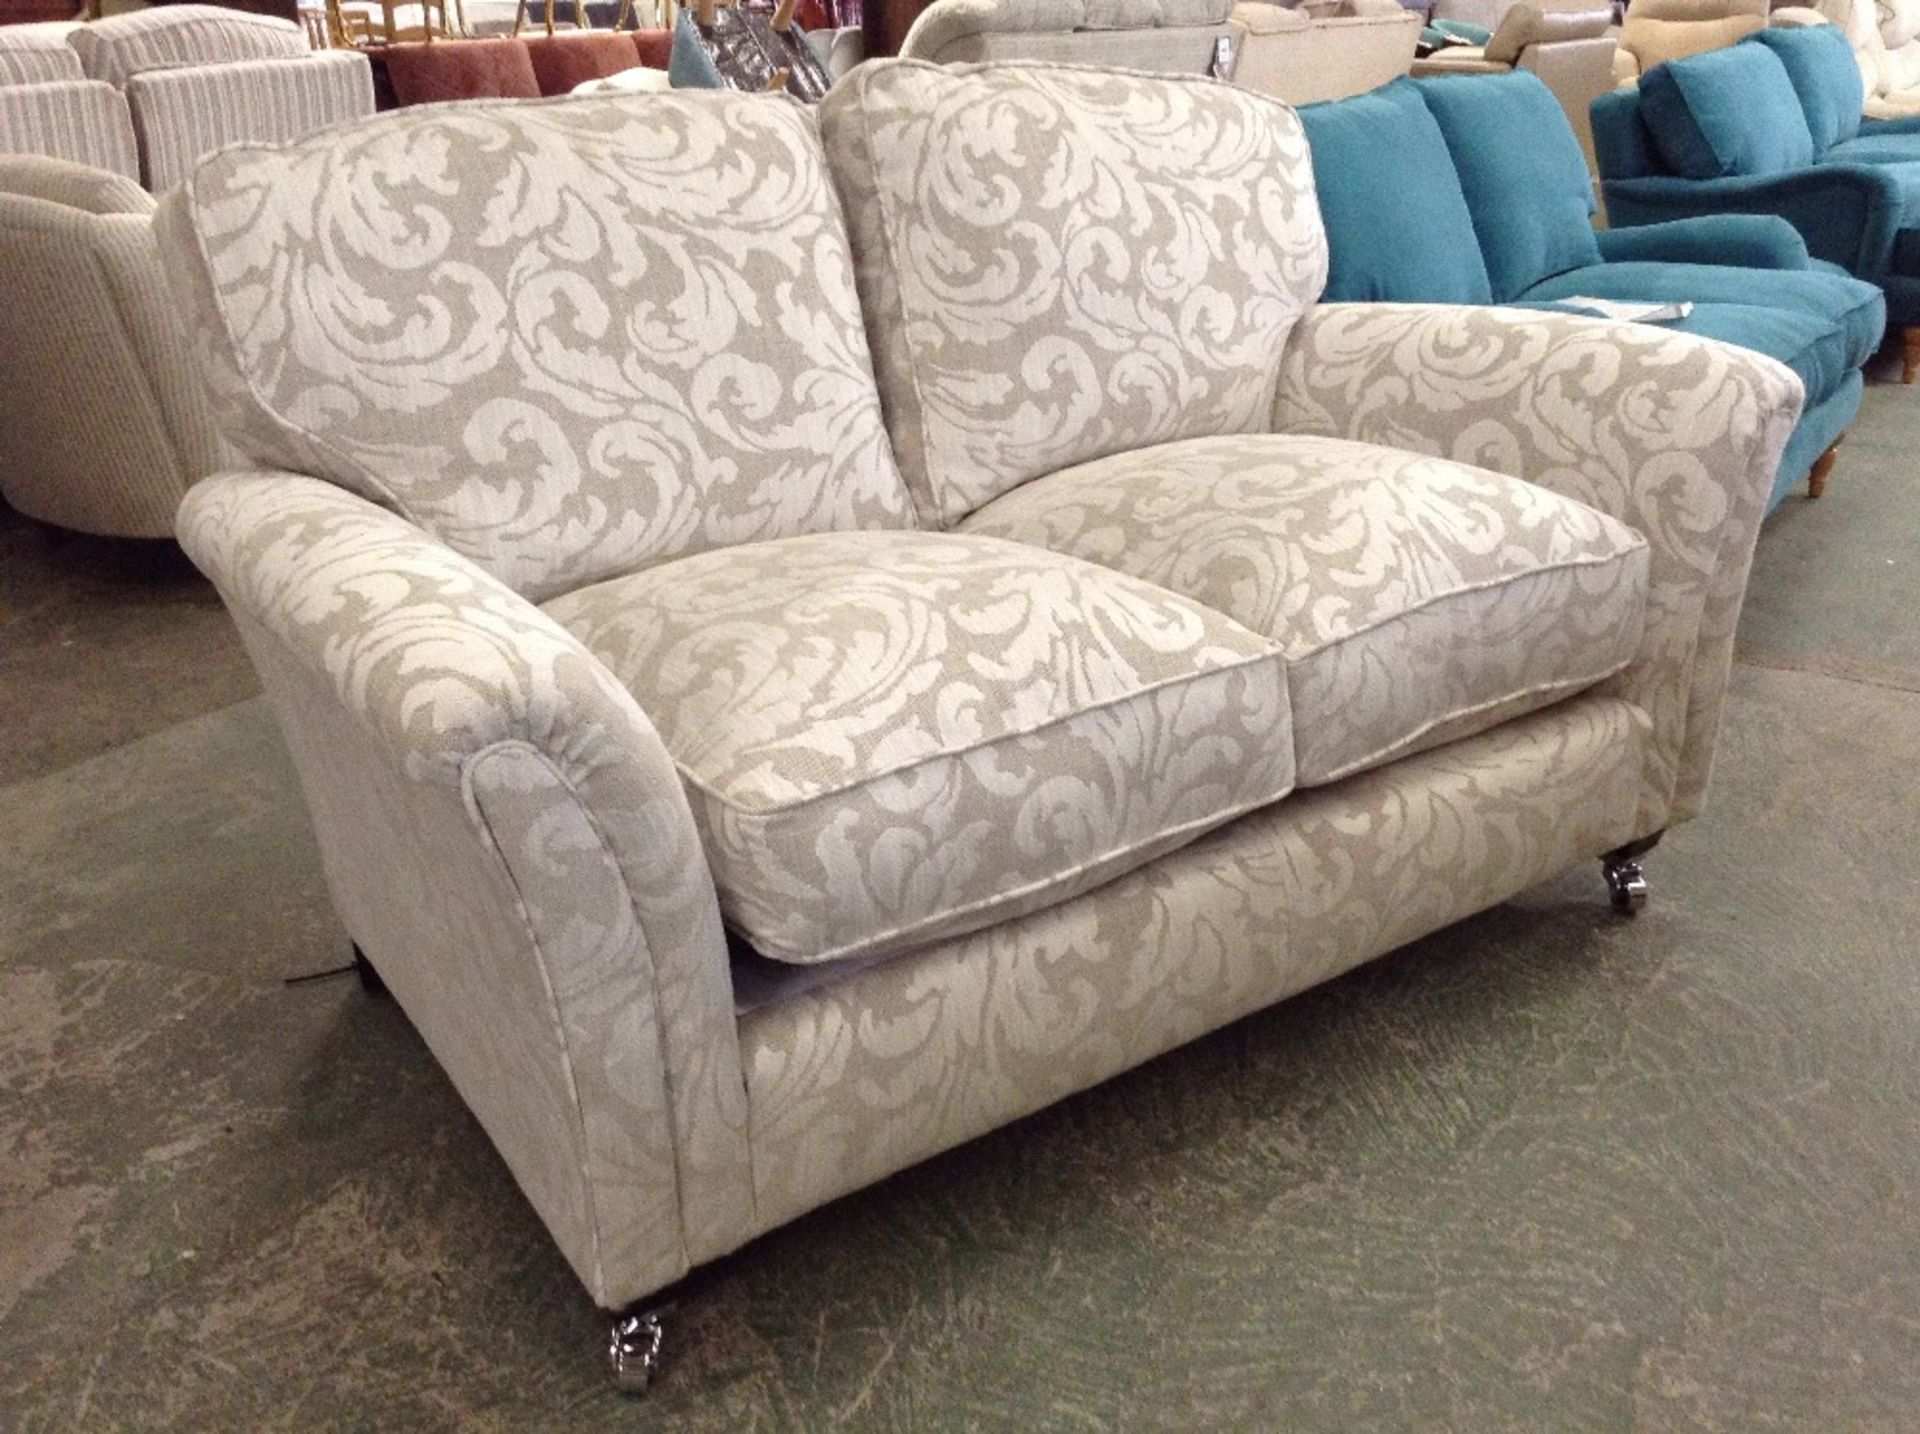 SILVER PATTERNED 2 SEATER SOFA (TROO1650-WOO569747